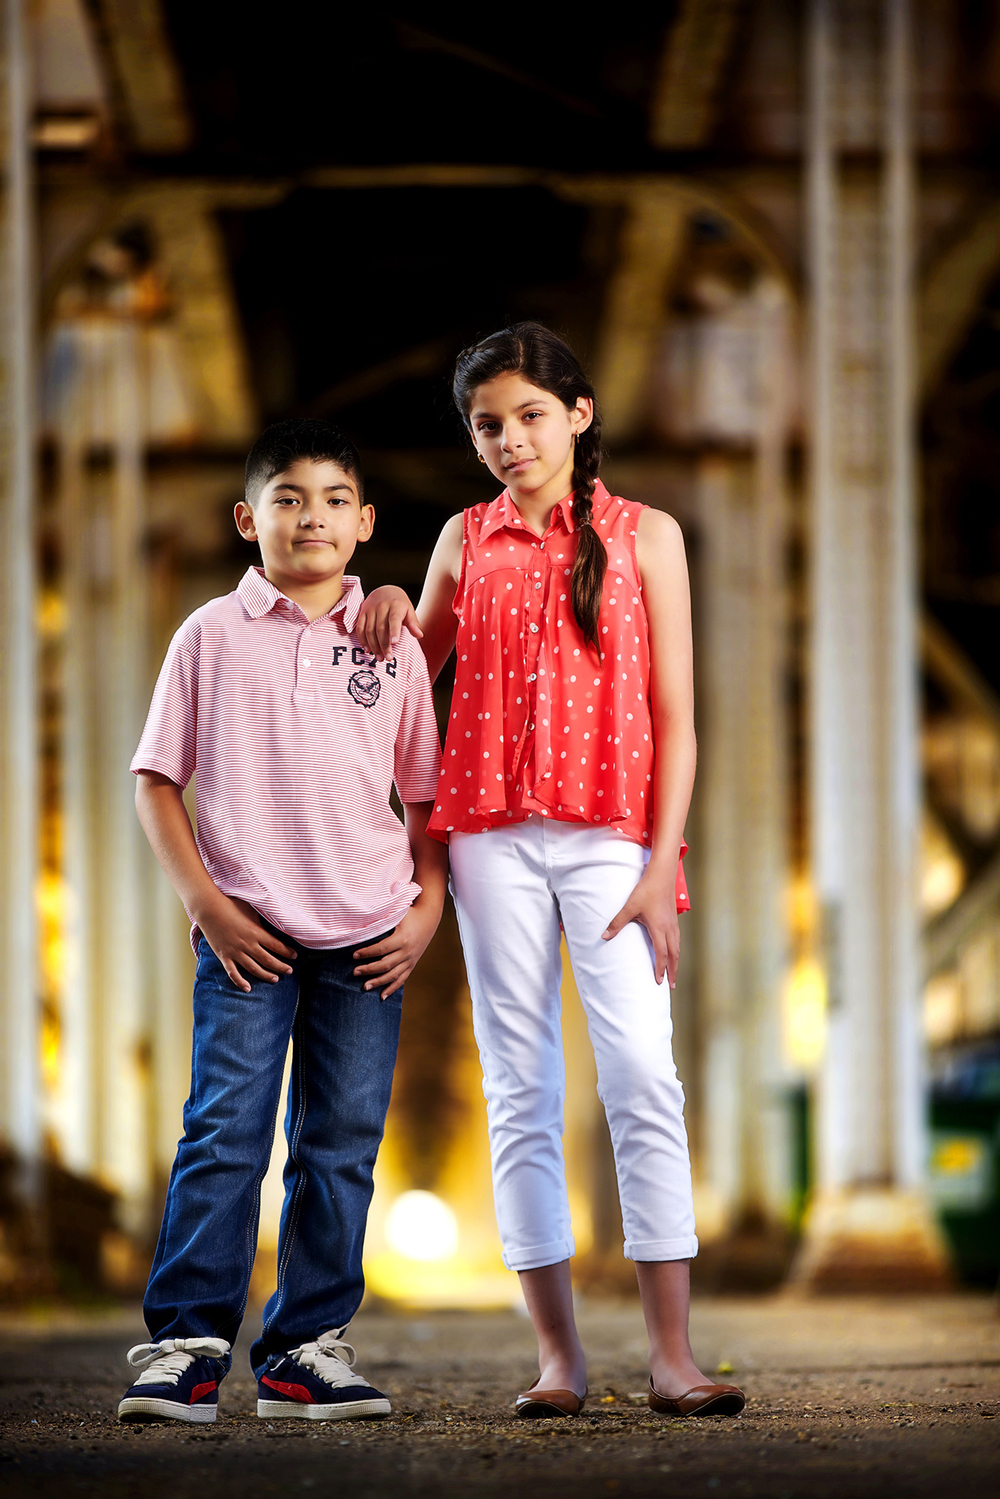 keds-kids-advertisement-in-chicago-under-sheriden-el-stop.jpg